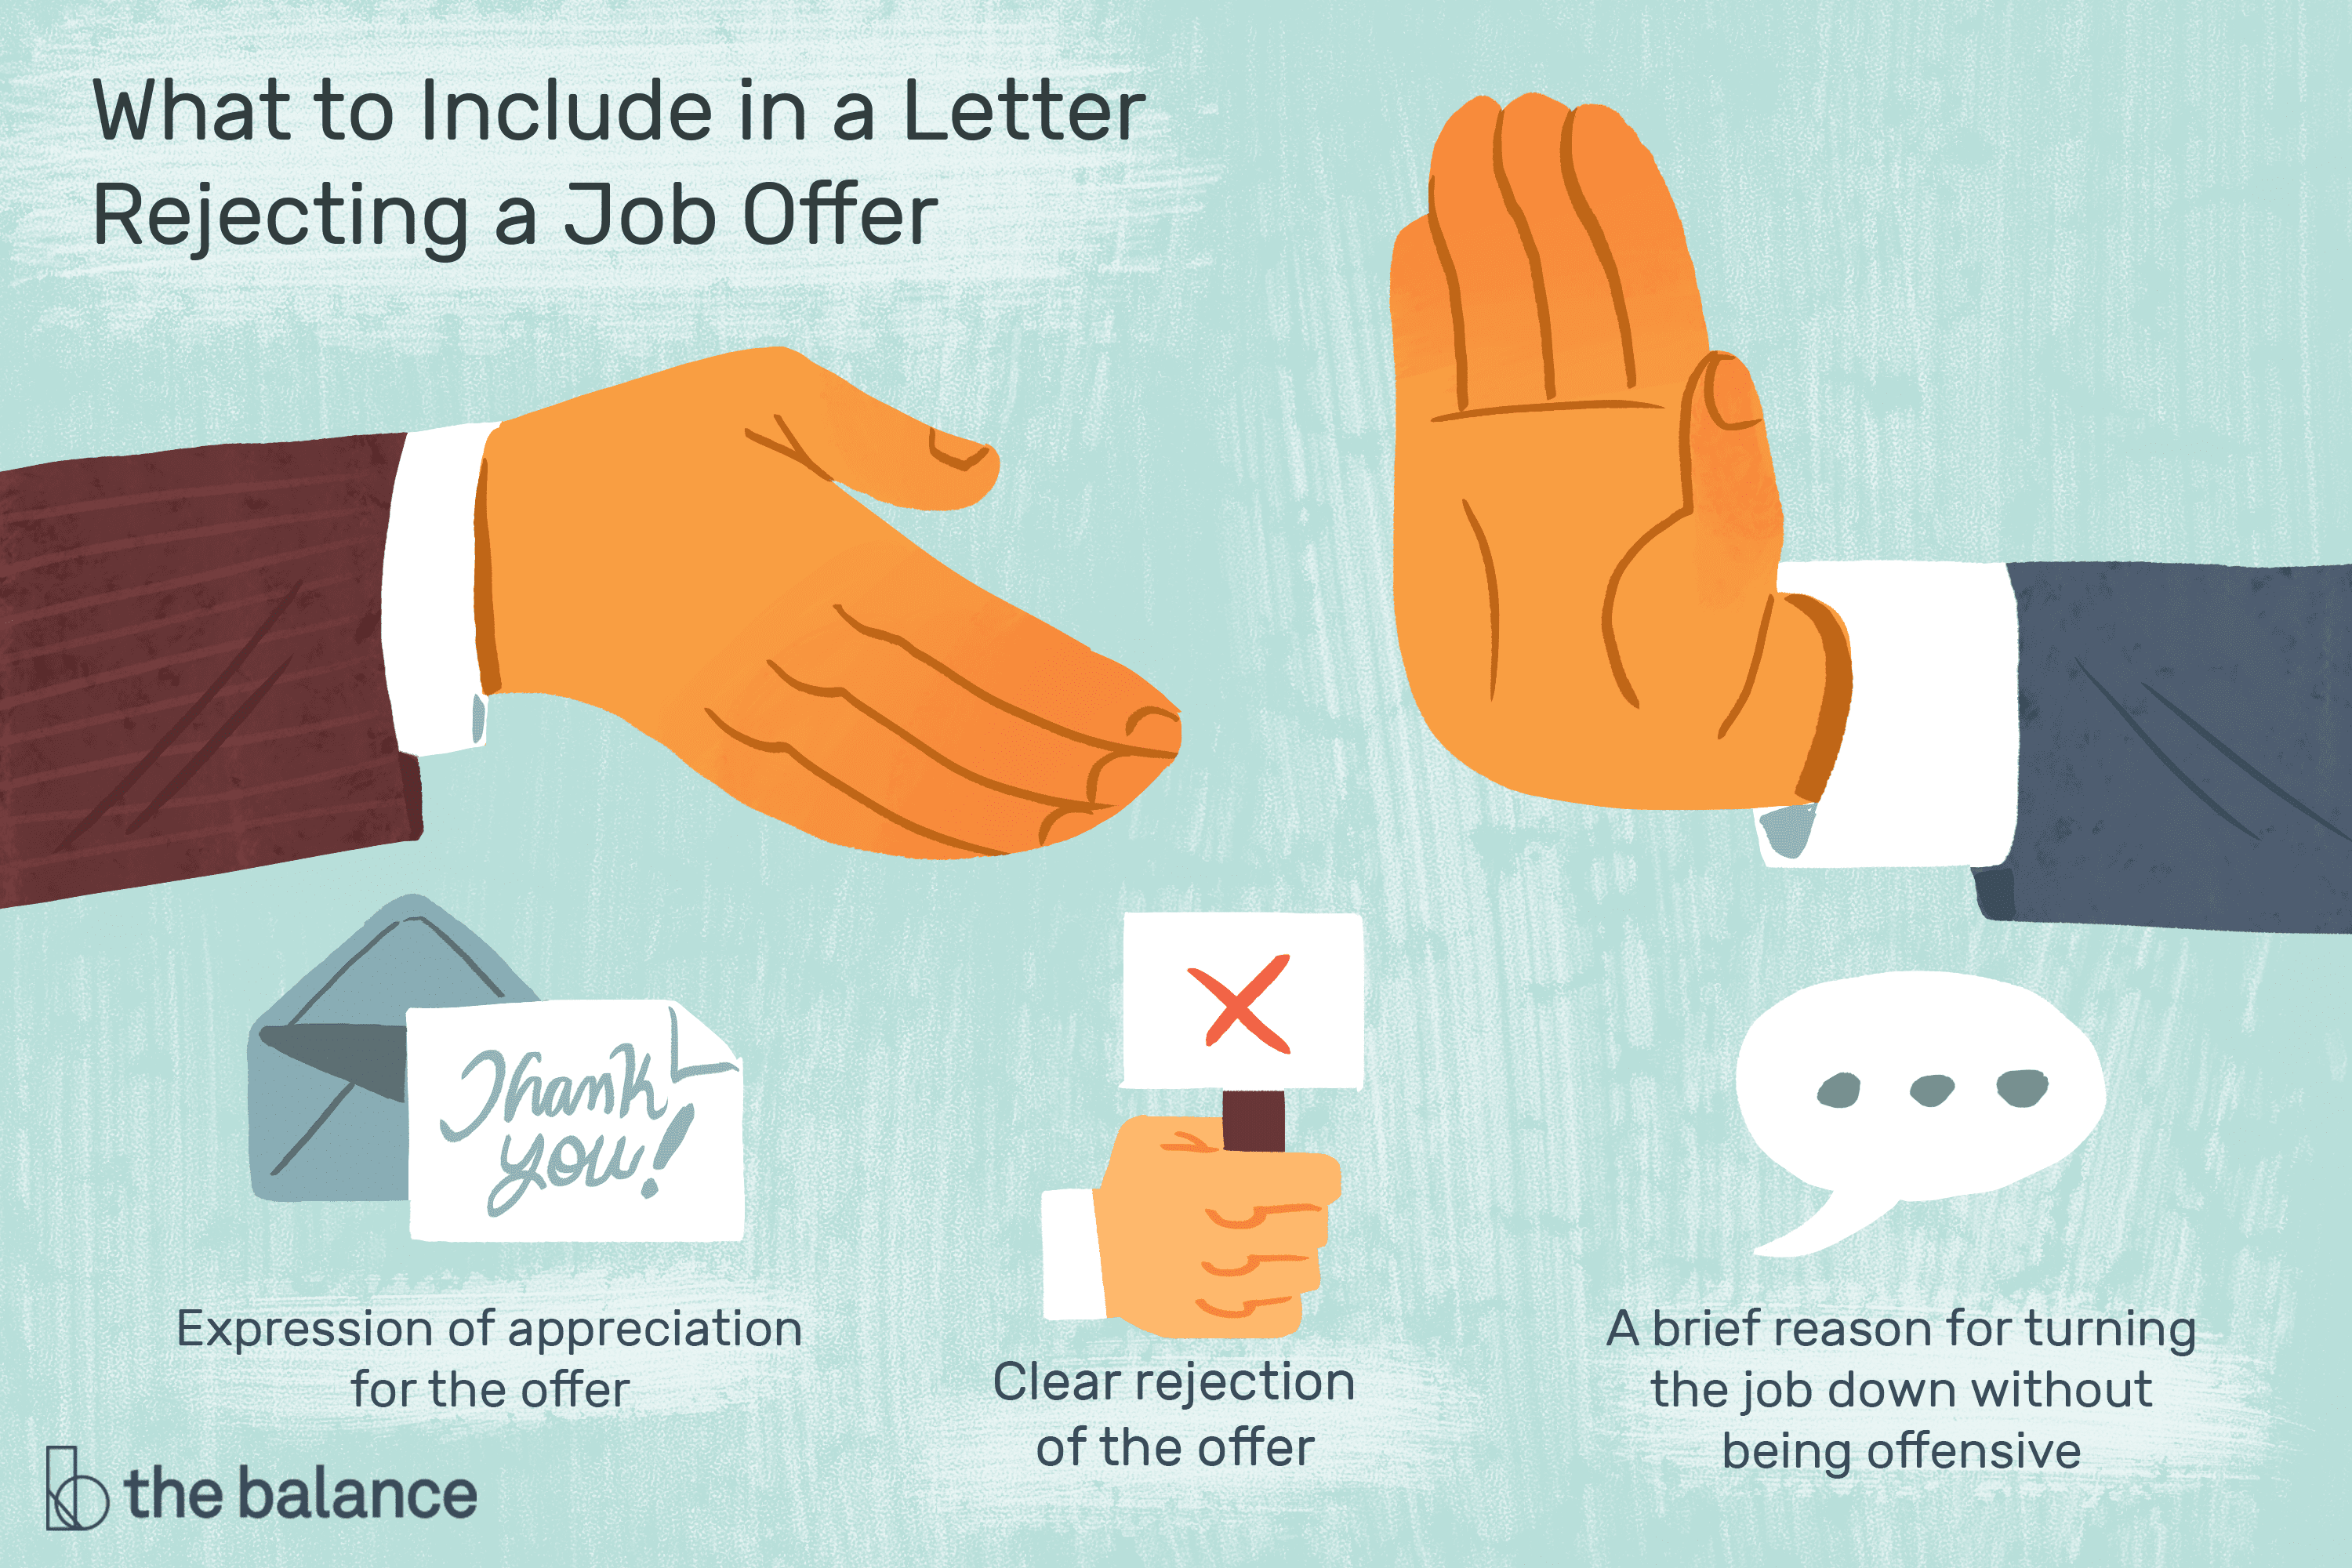 How To Decline a Job Offer (with Letter Examples)